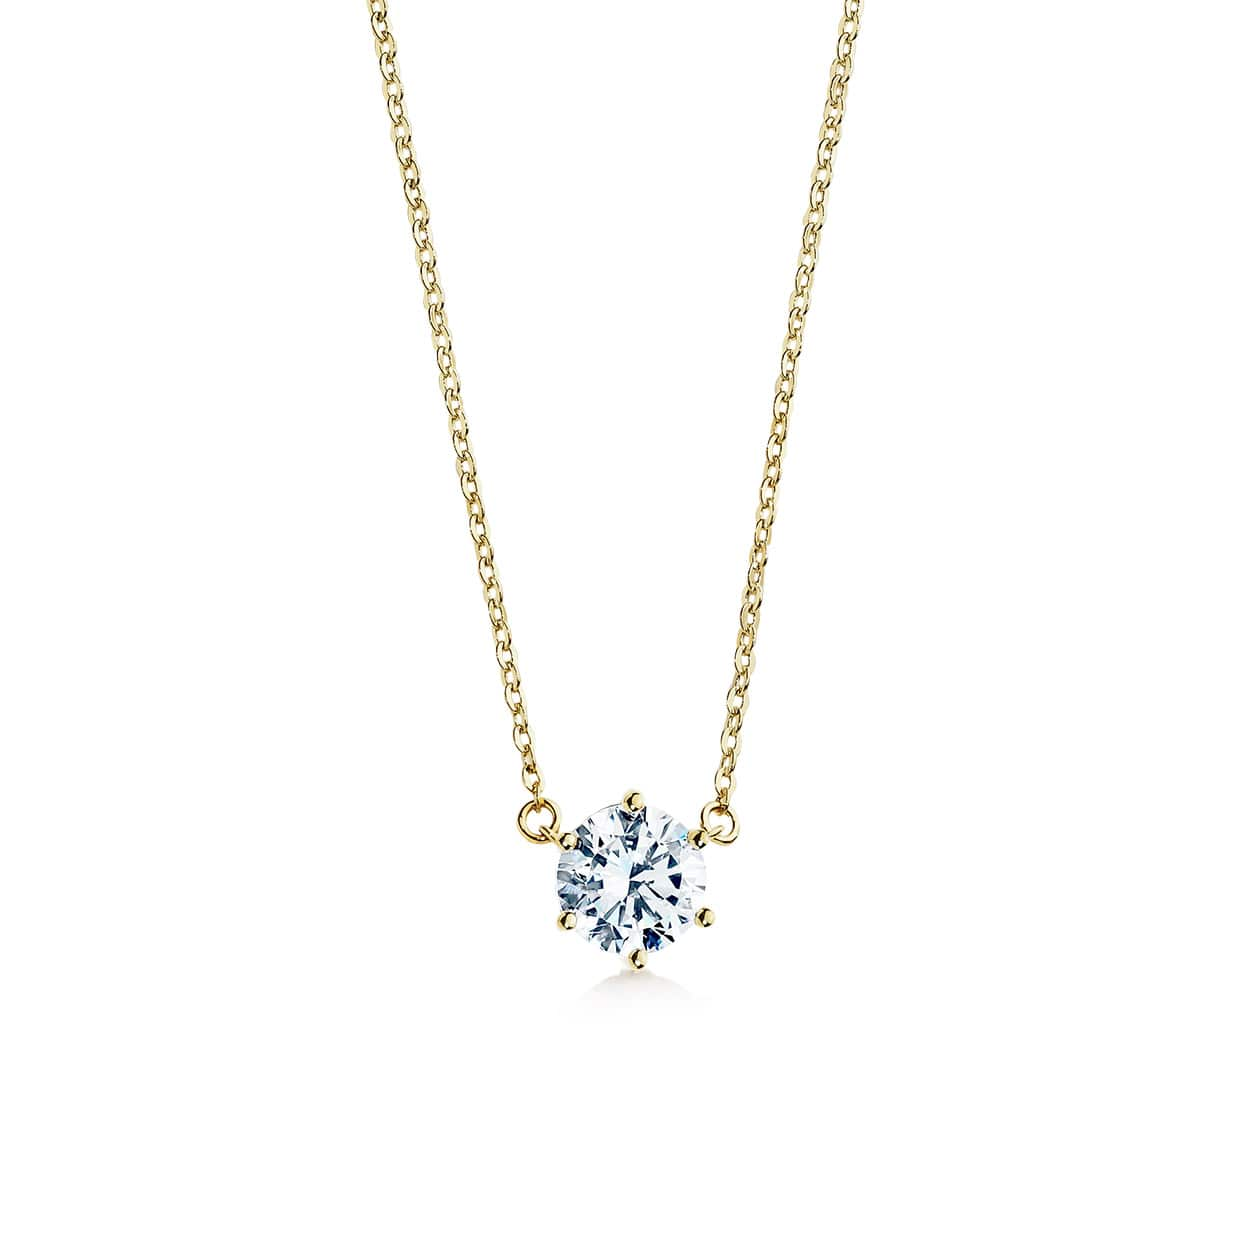 Oxford Gold Classic Solitaire Necklace - Abelstedt